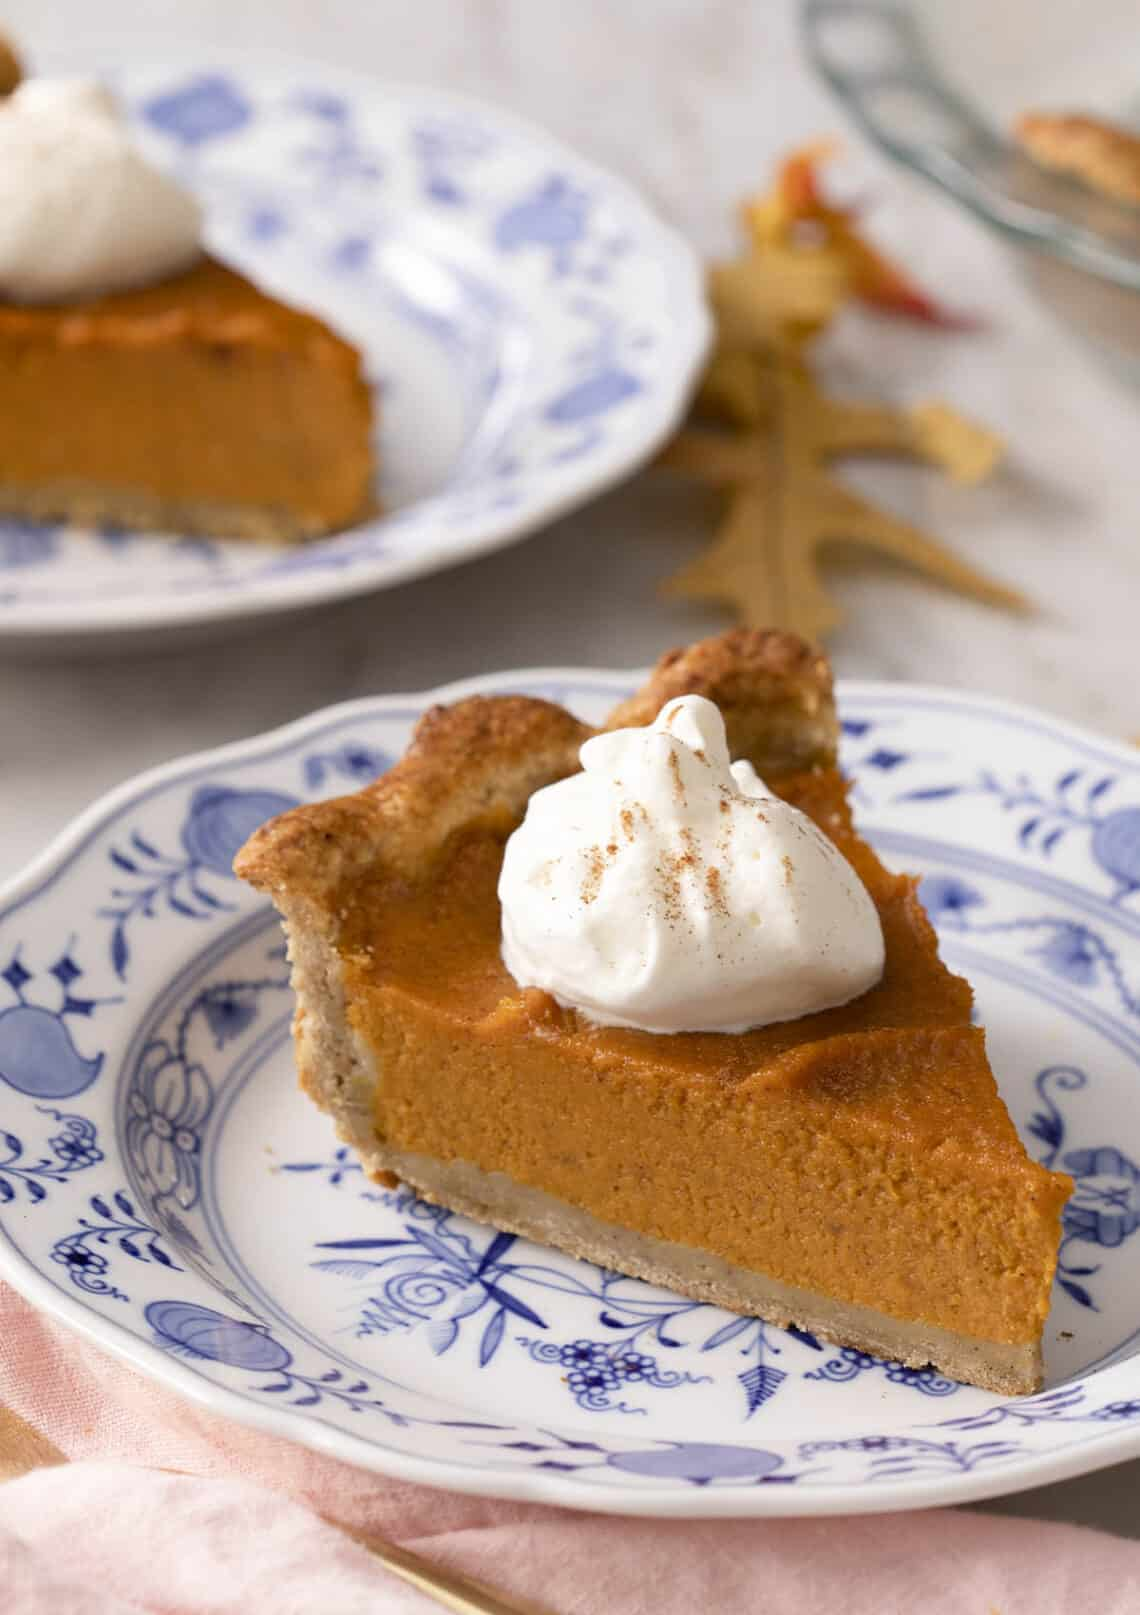 A piece of sweet potato pie on a blue and white plate.